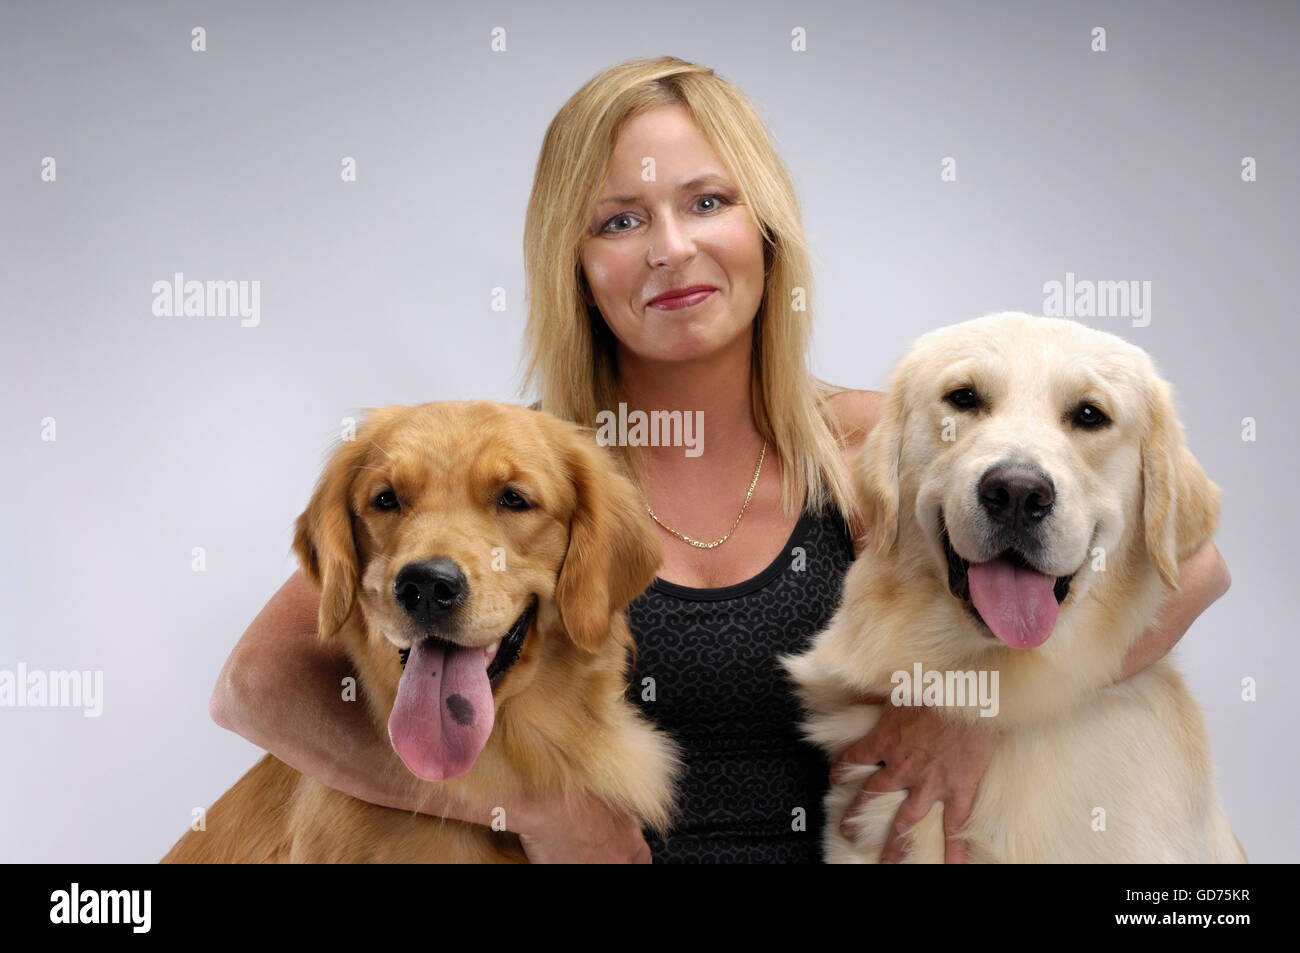 Woman hugging two one-year-old Golden Retrievers - Stock Image